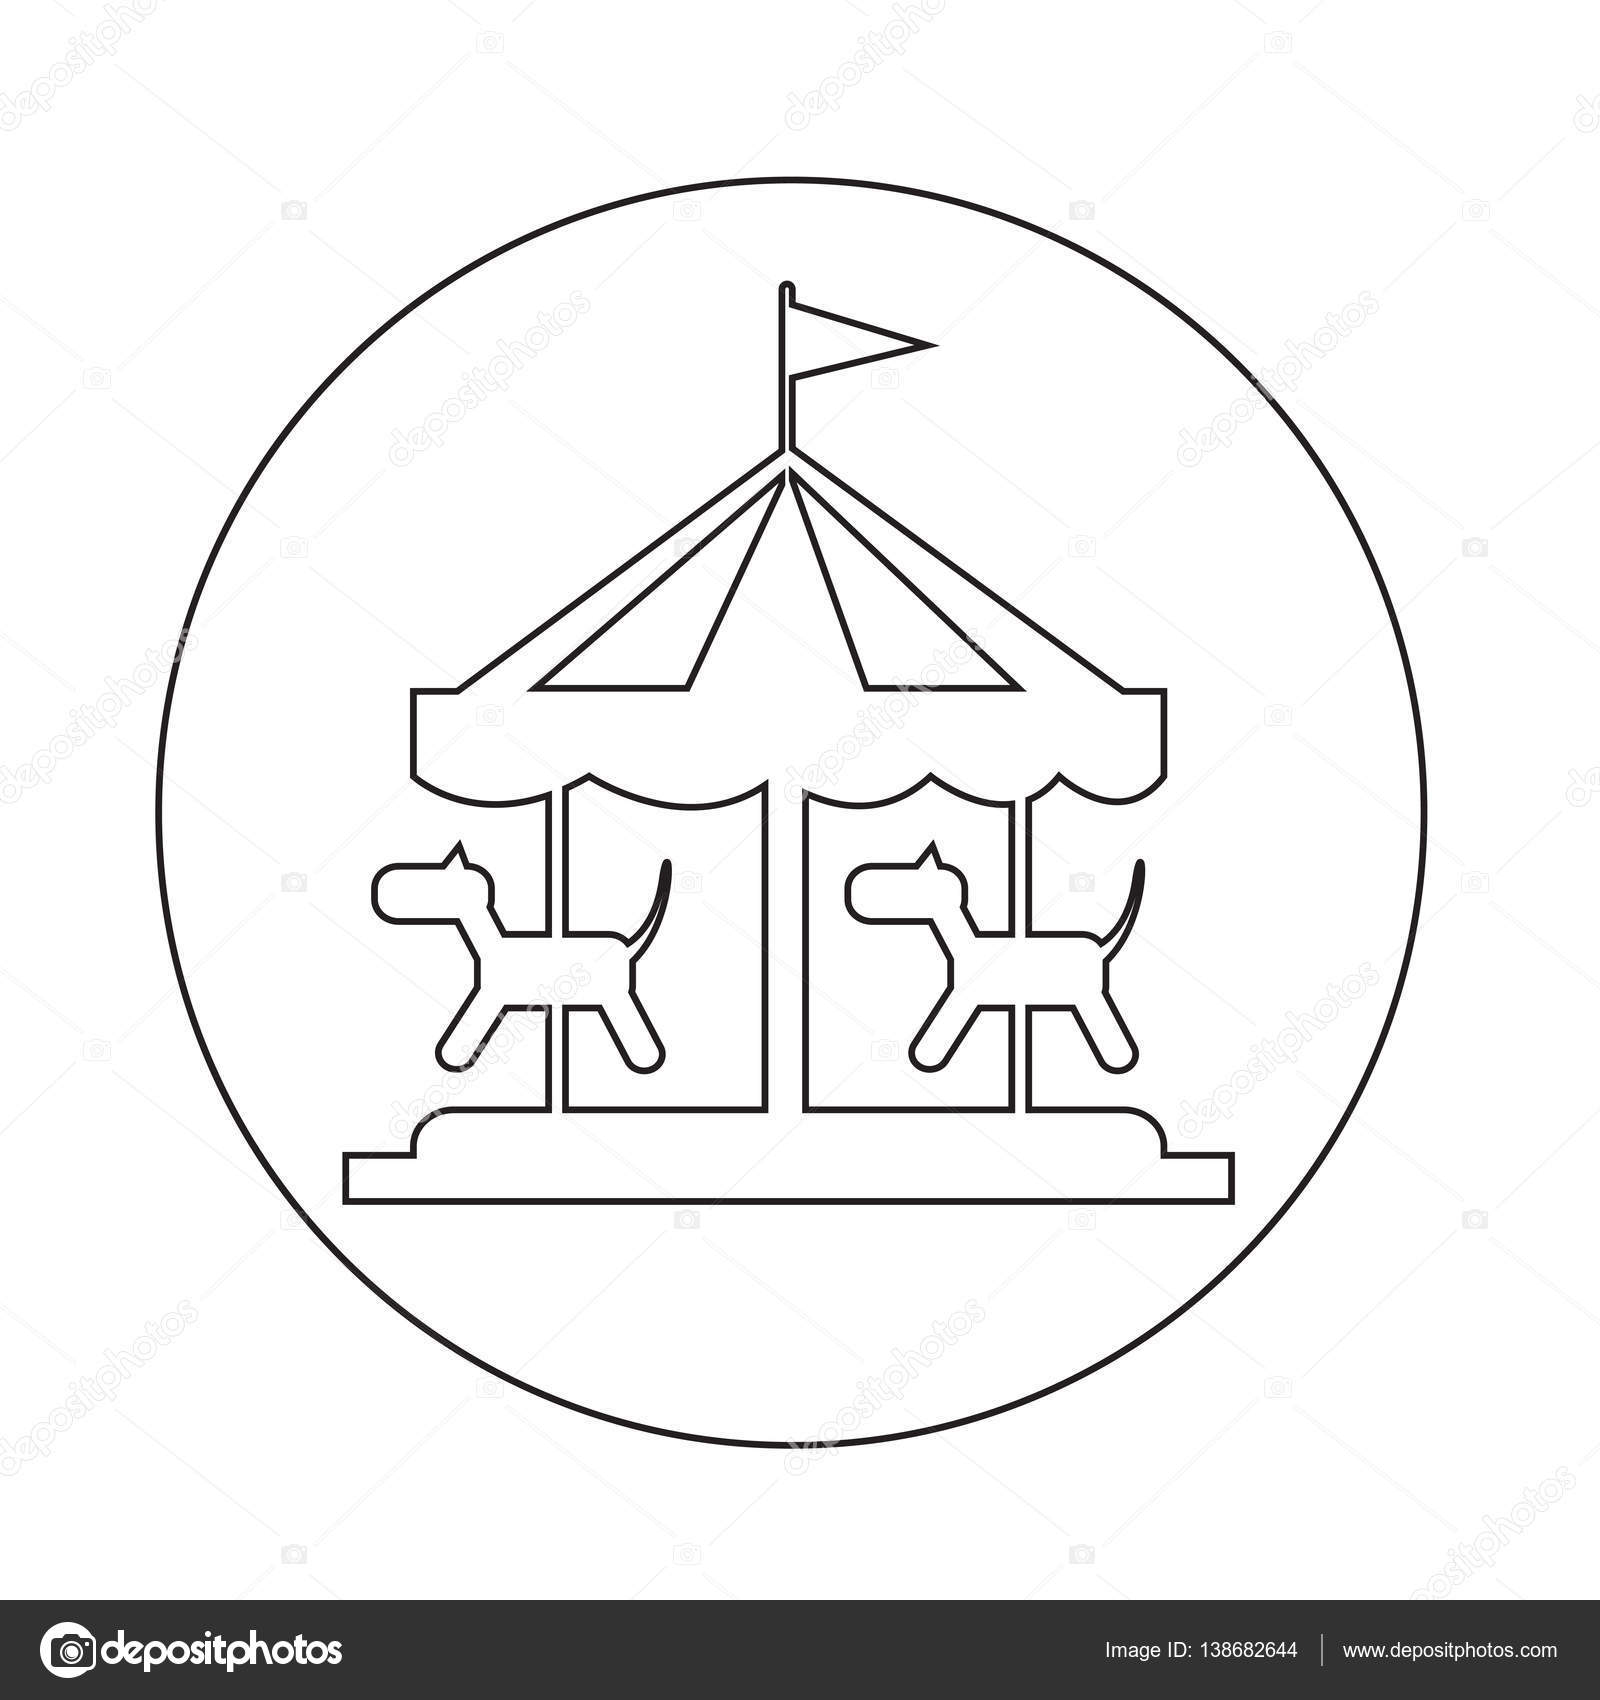 Carousel Simple Icon Stock Vector C Porjai 138682644